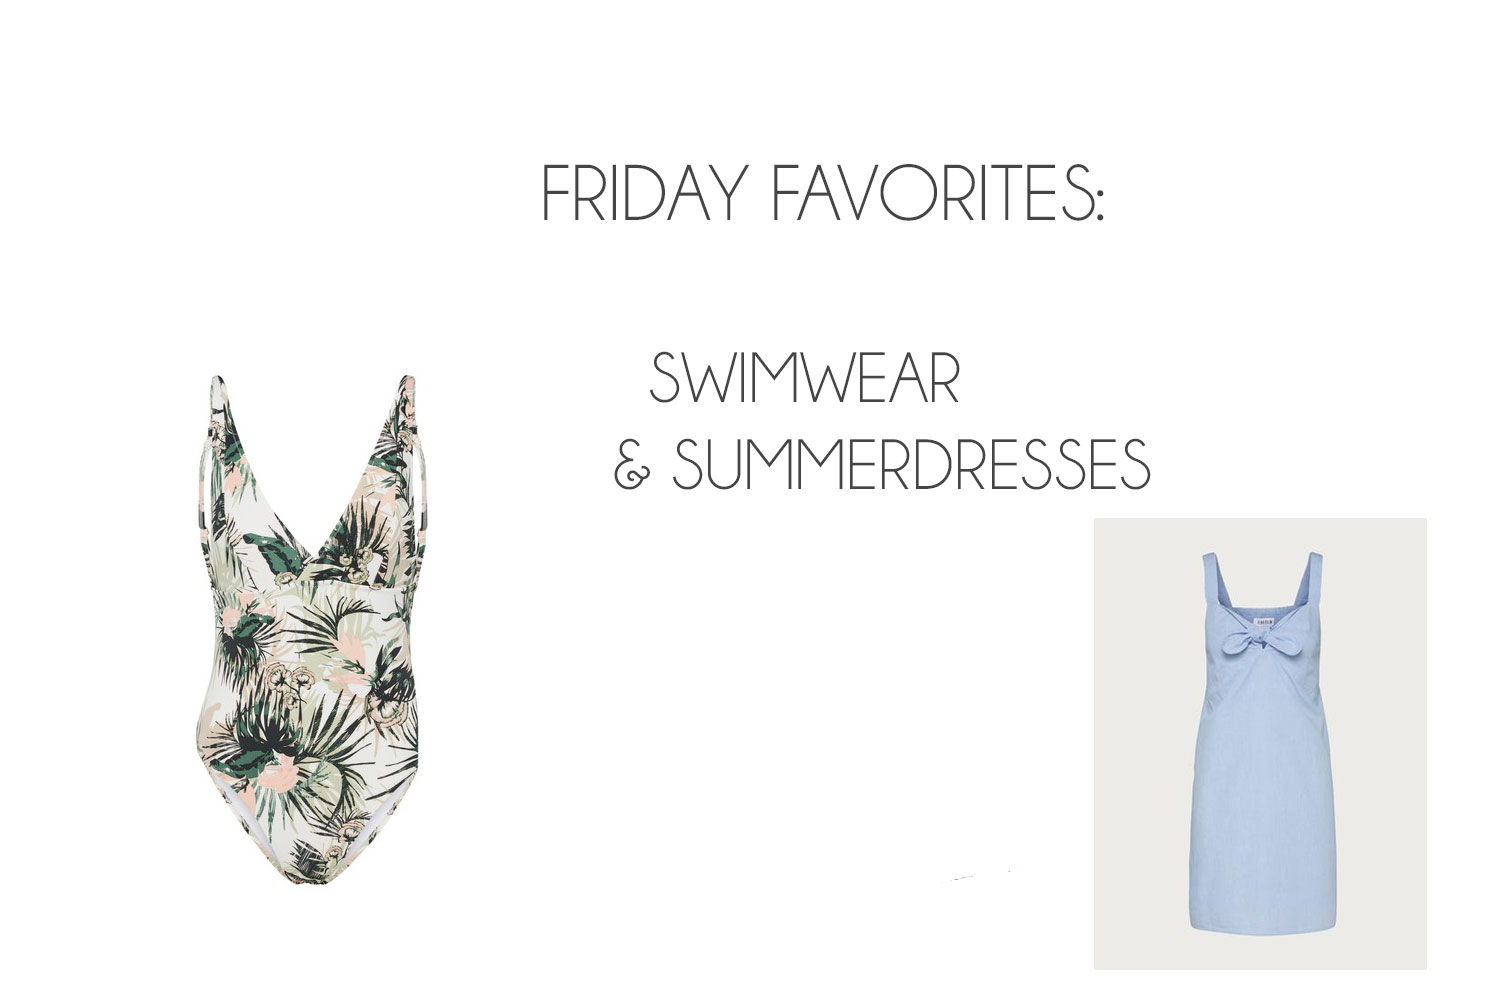 Friday Favorites: Swimwear & Summerdresses